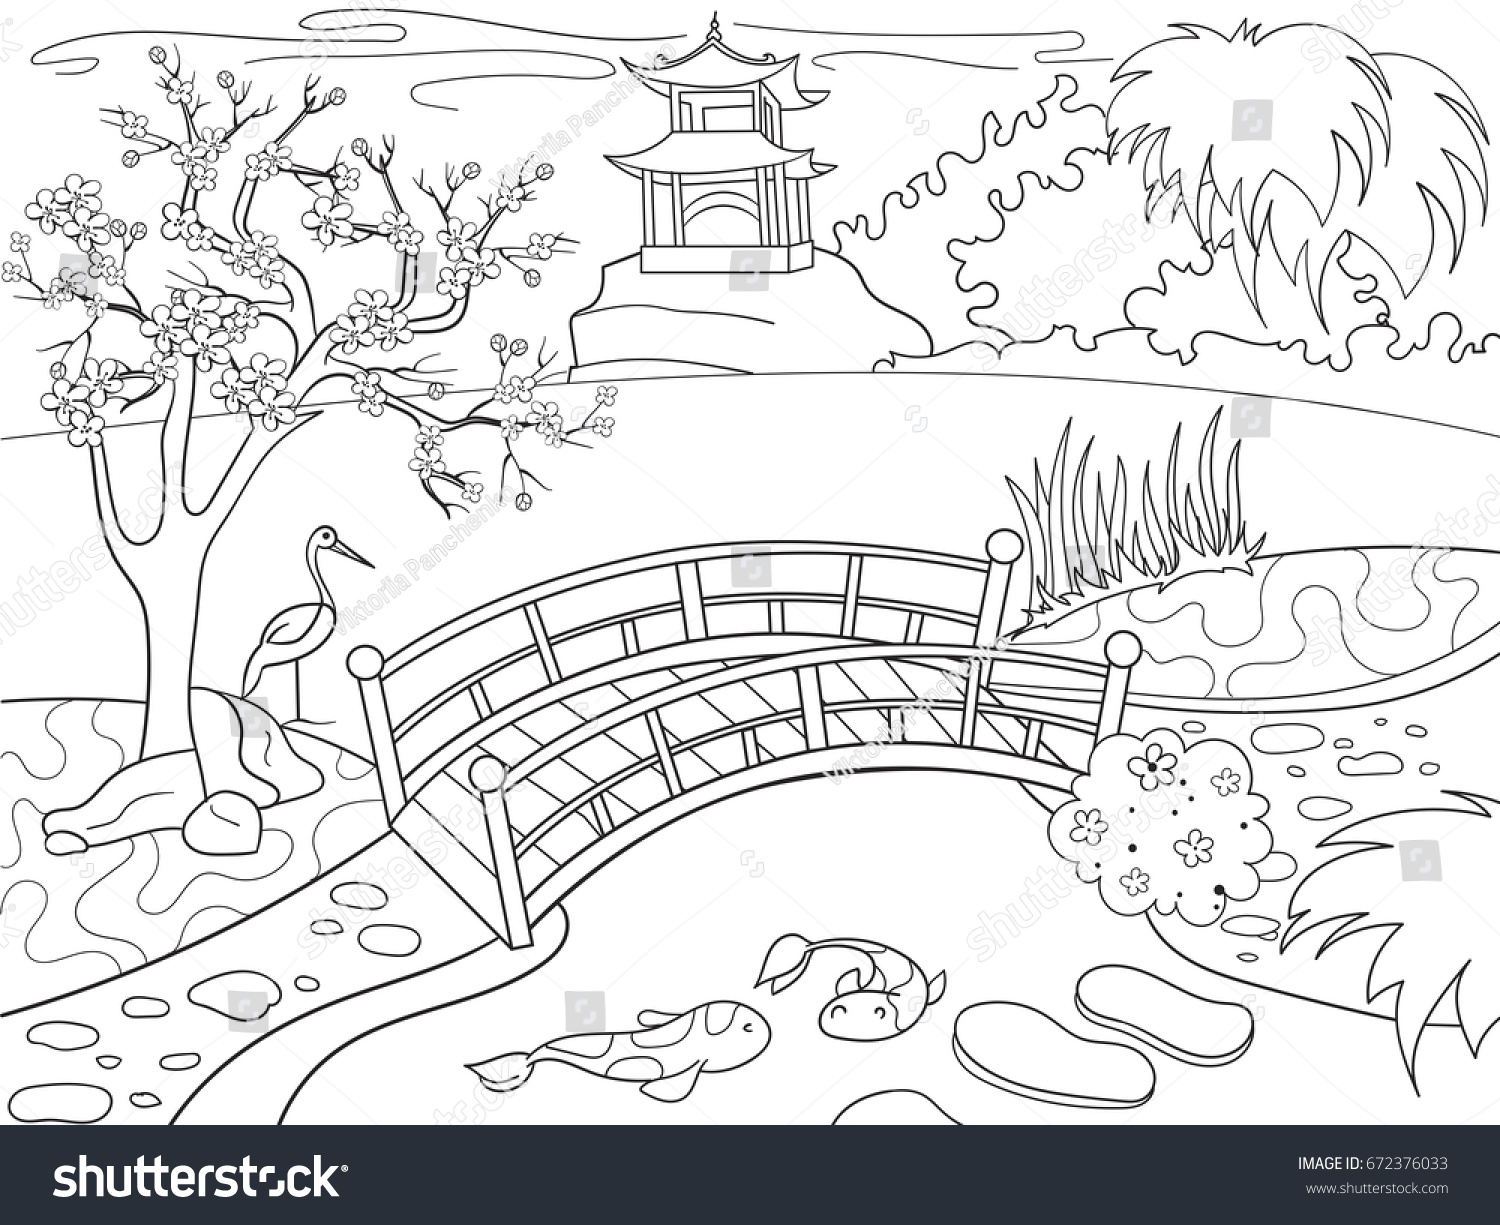 nature japan coloring book children cartoon stock vector 672376033